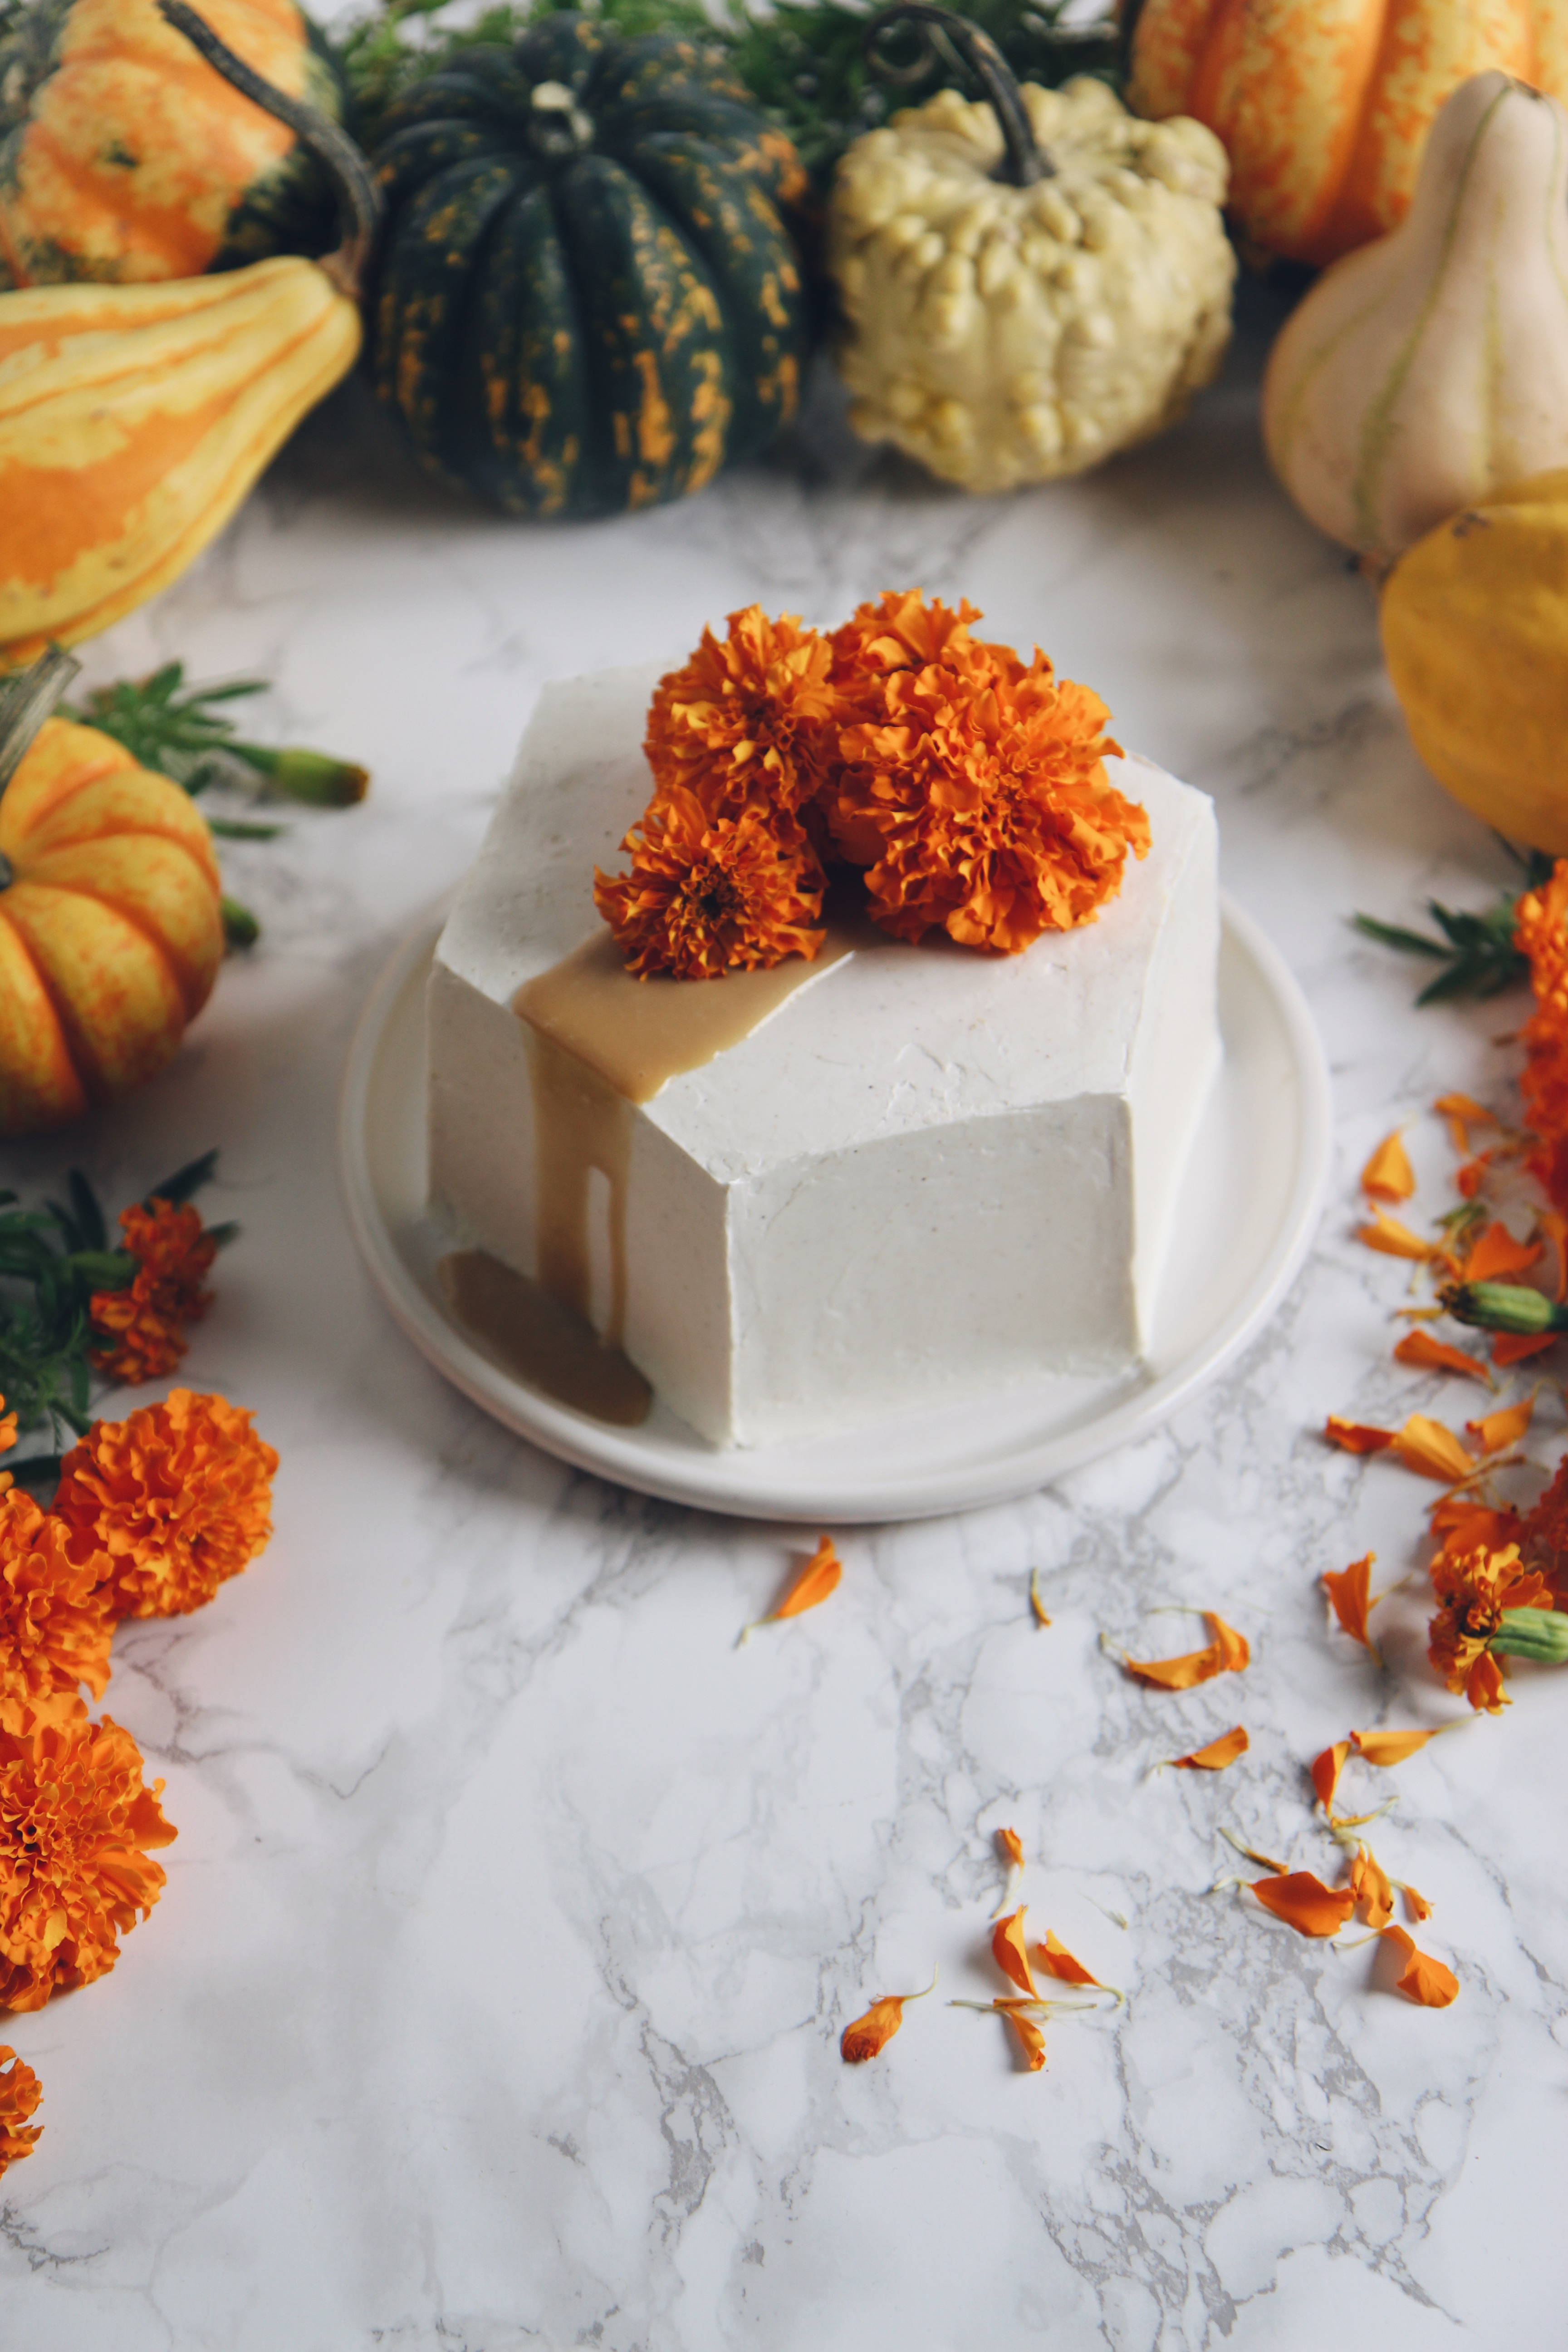 Hexagonal Pumpkin Cake with Spiced Meringue Buttercream | La Pêche Fraîche